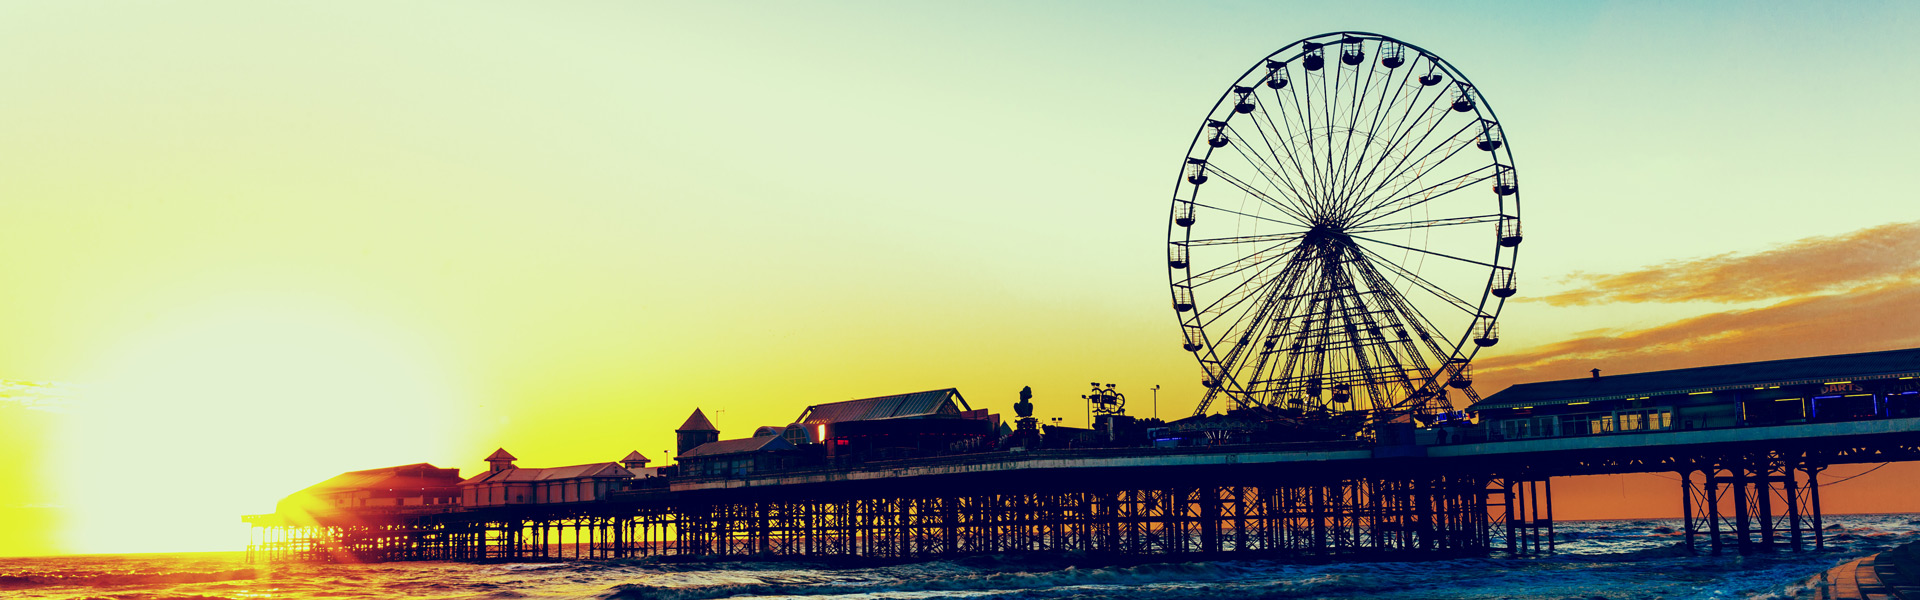 <h1>Blackpool Self Catering Holiday Apartments</h1>